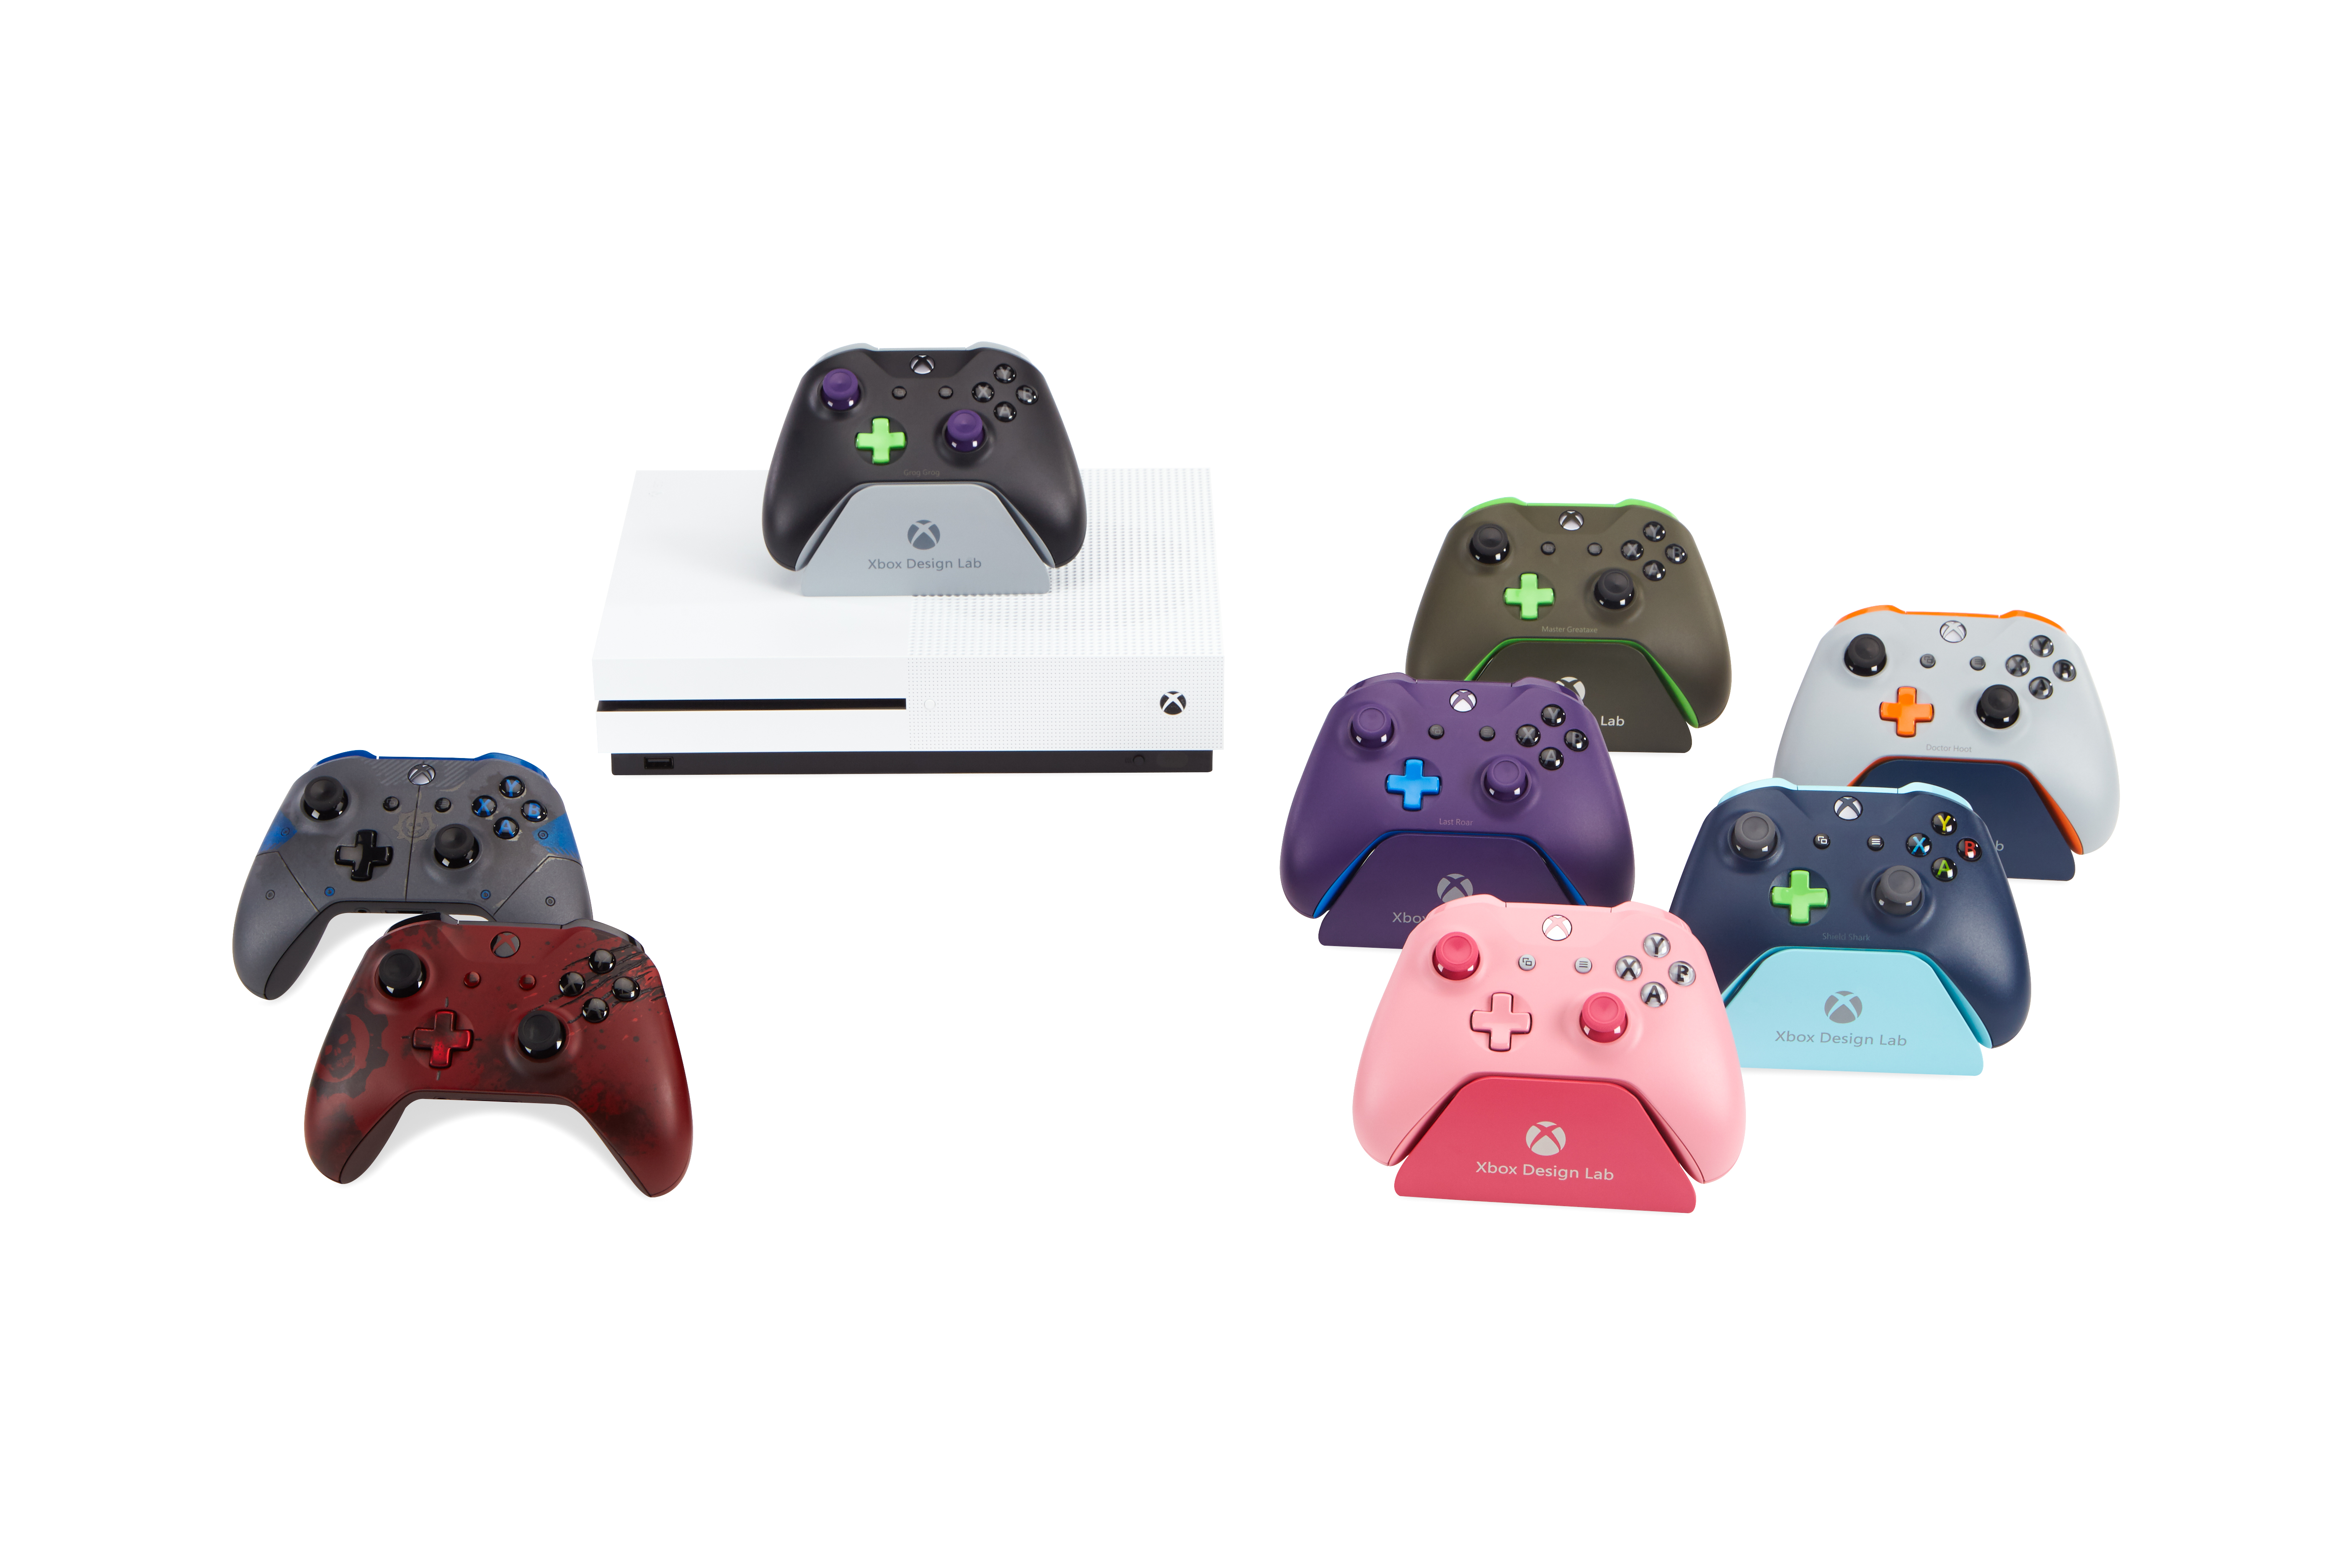 Picture of various Xbox Wireless Controllers available this holiday